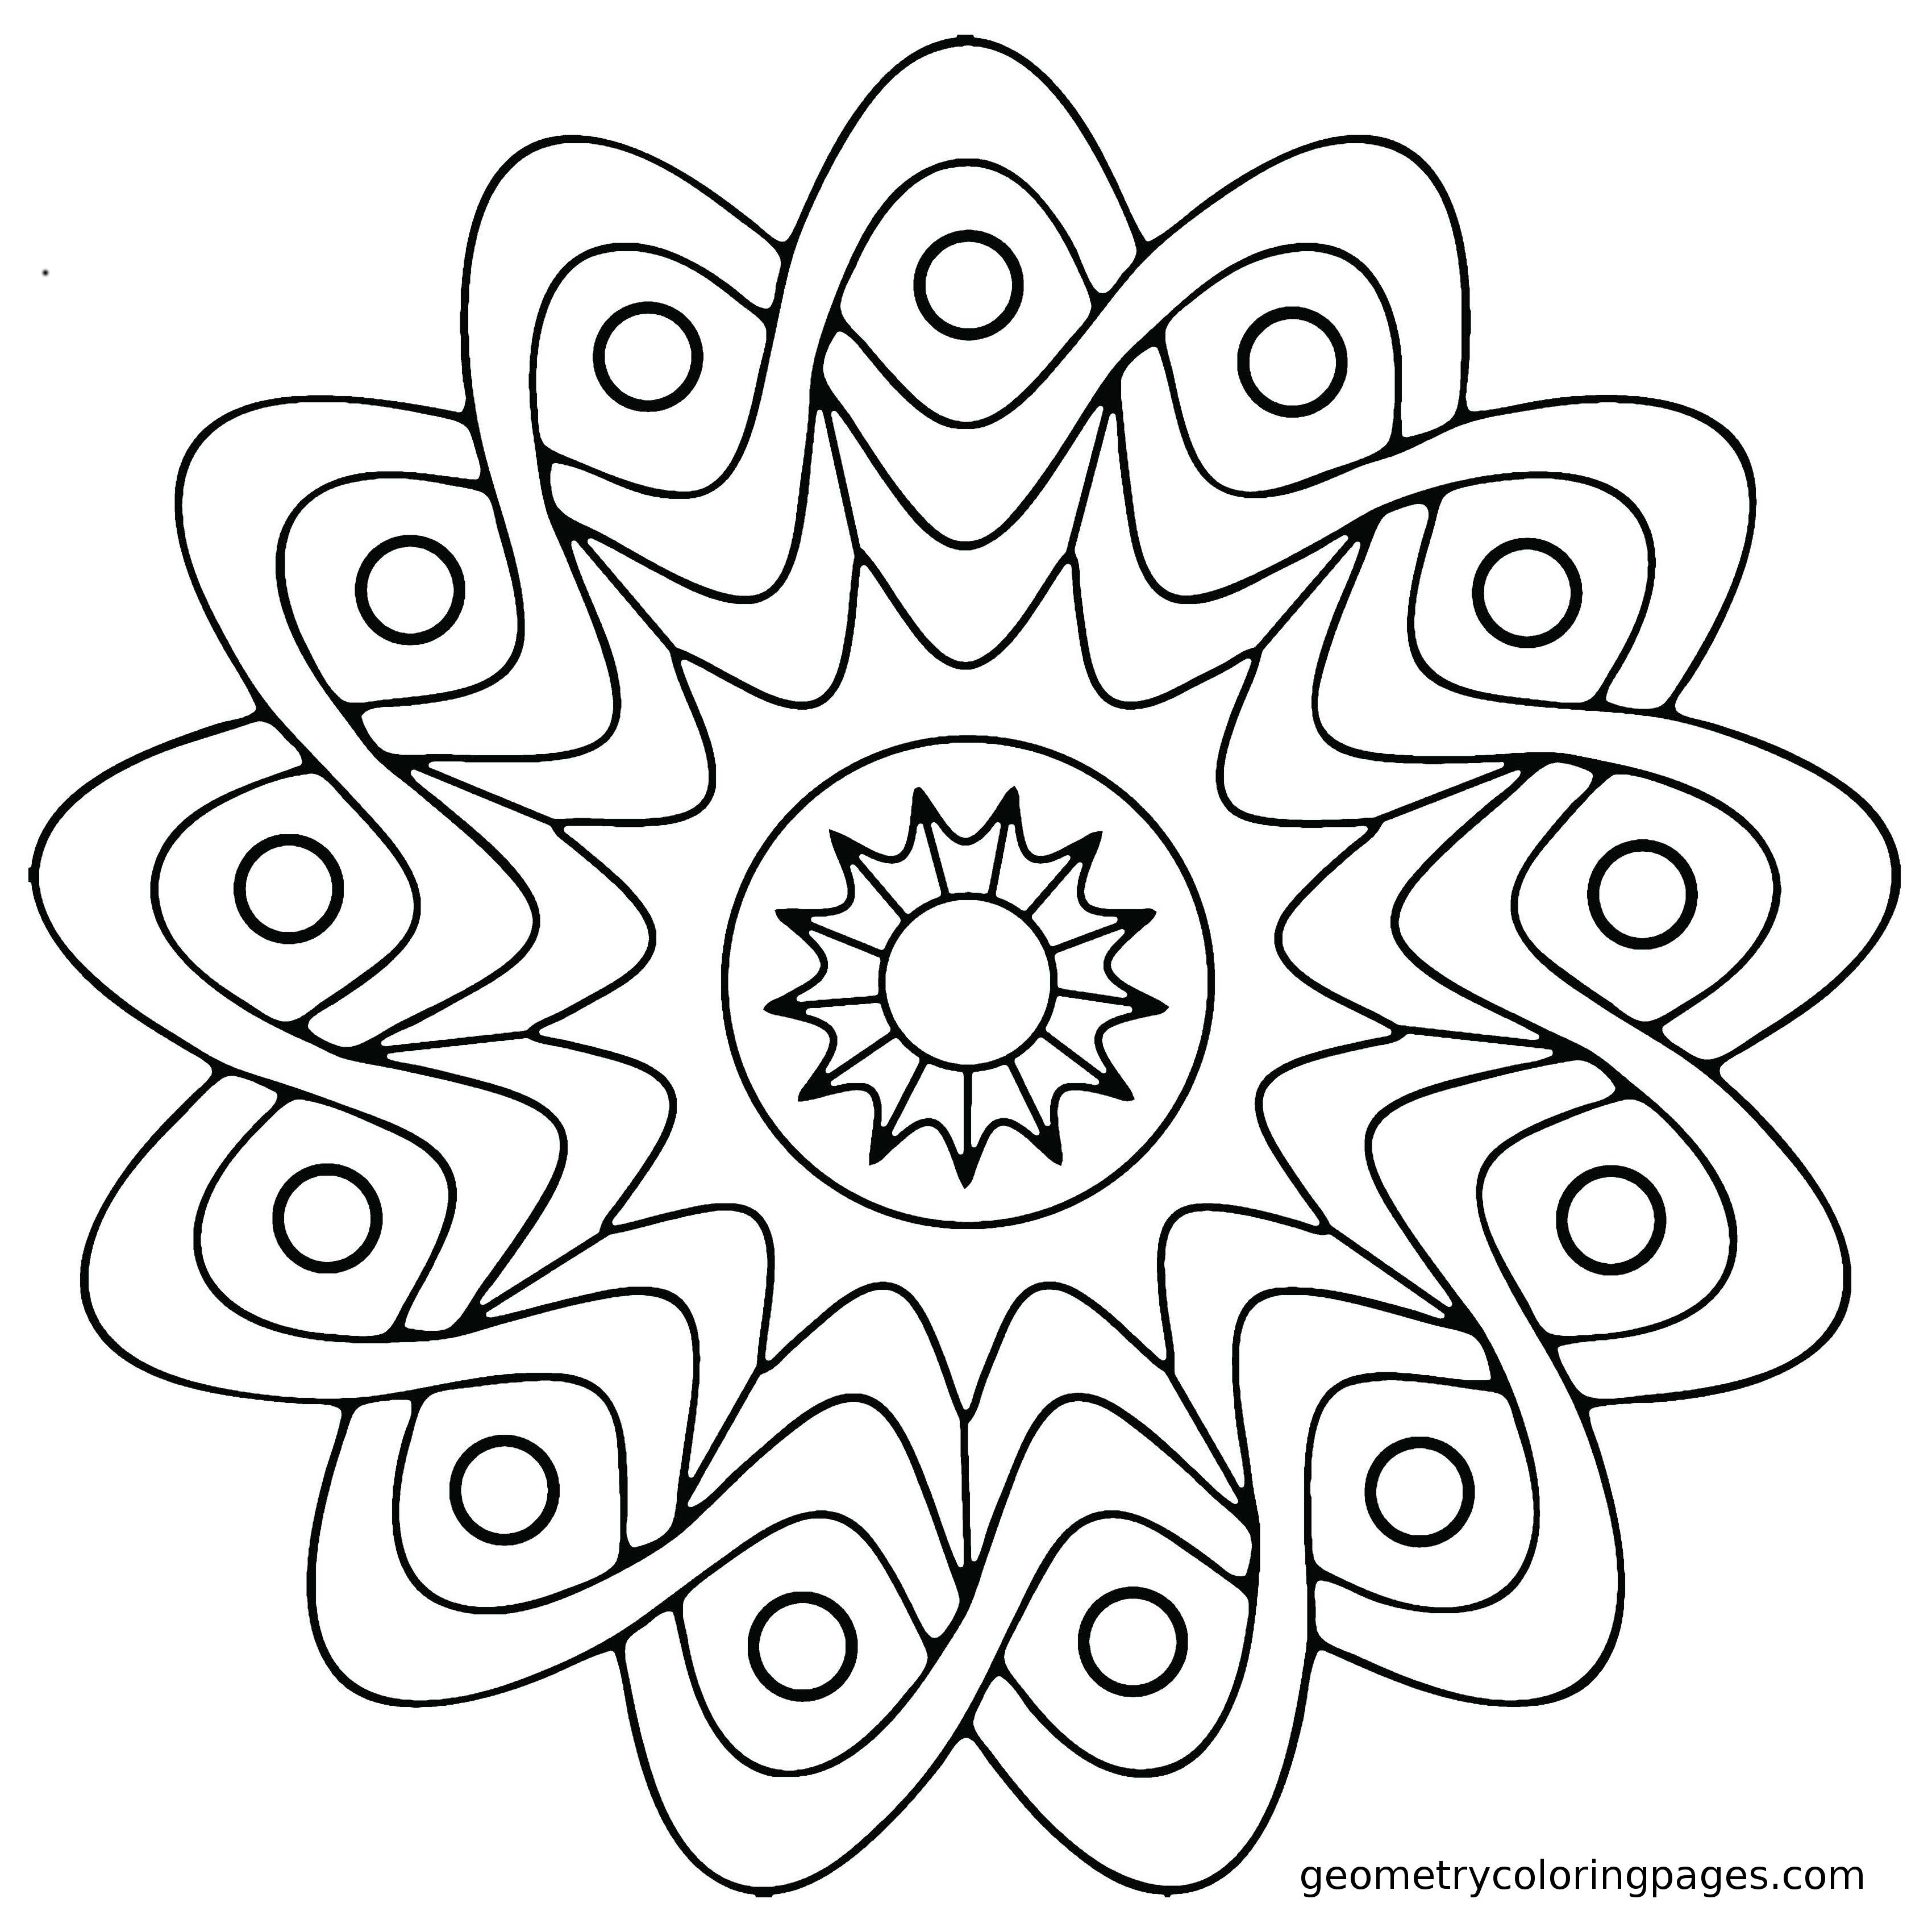 mandala coloring pages easy mandala coloring pages printable katibura printable